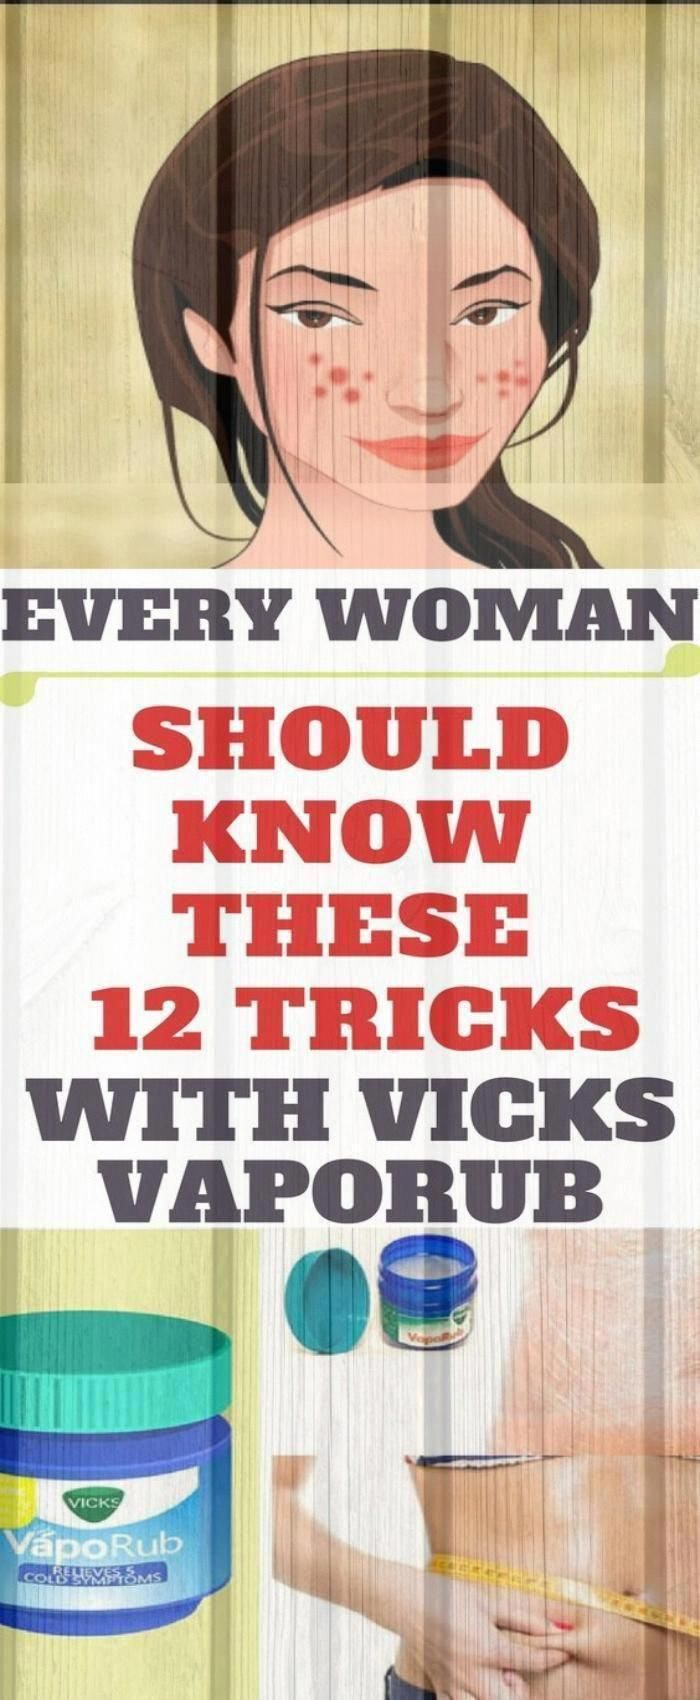 Every Woman Should Know These 12 #tricks With Vicks VapoRub - Good to know! #health #fitness #OtherU...